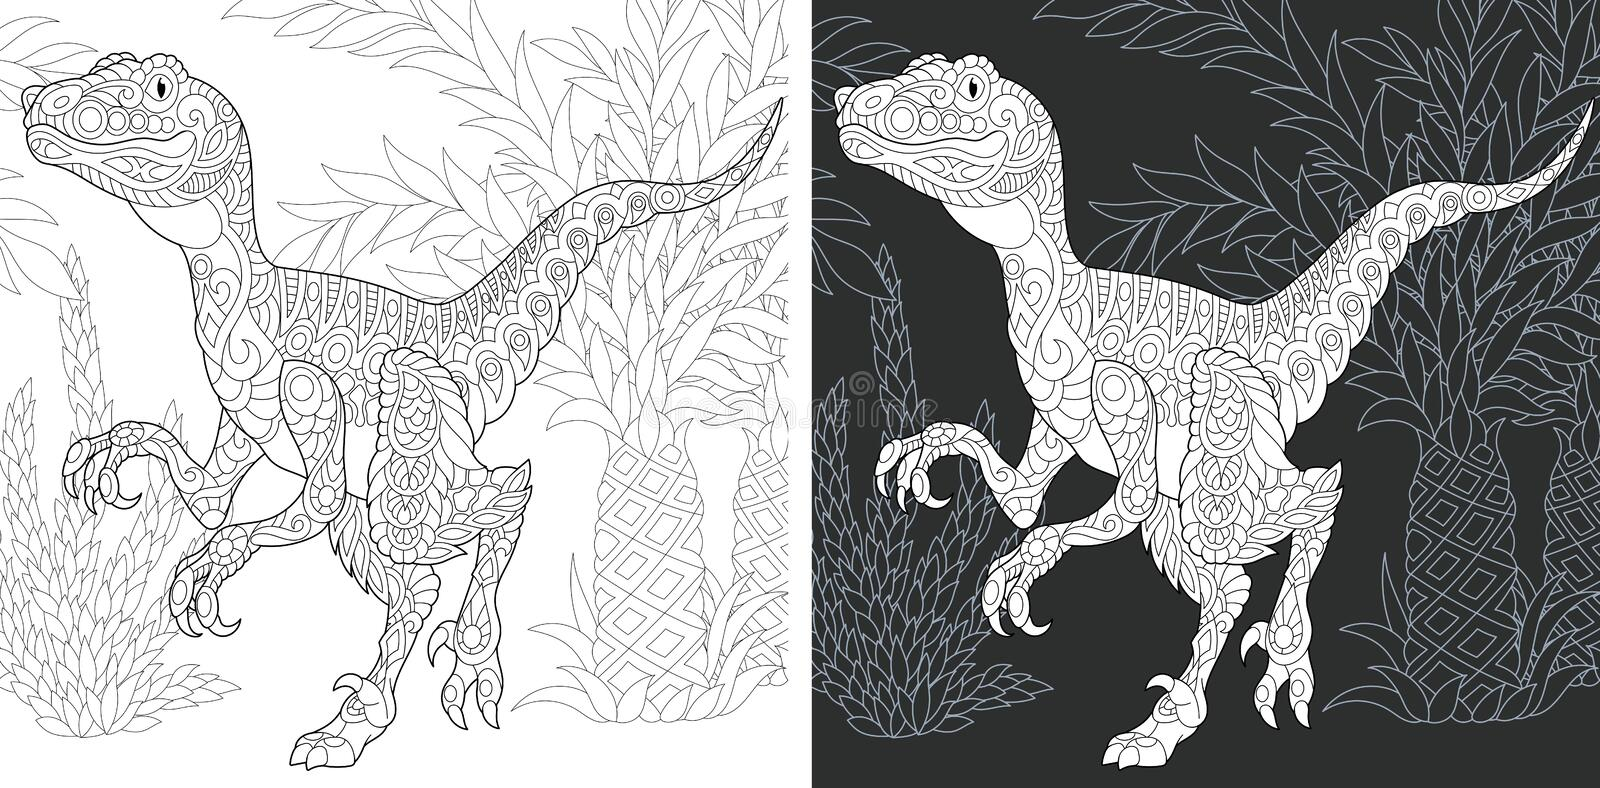 Coloring pages with Raptor royalty free stock photo